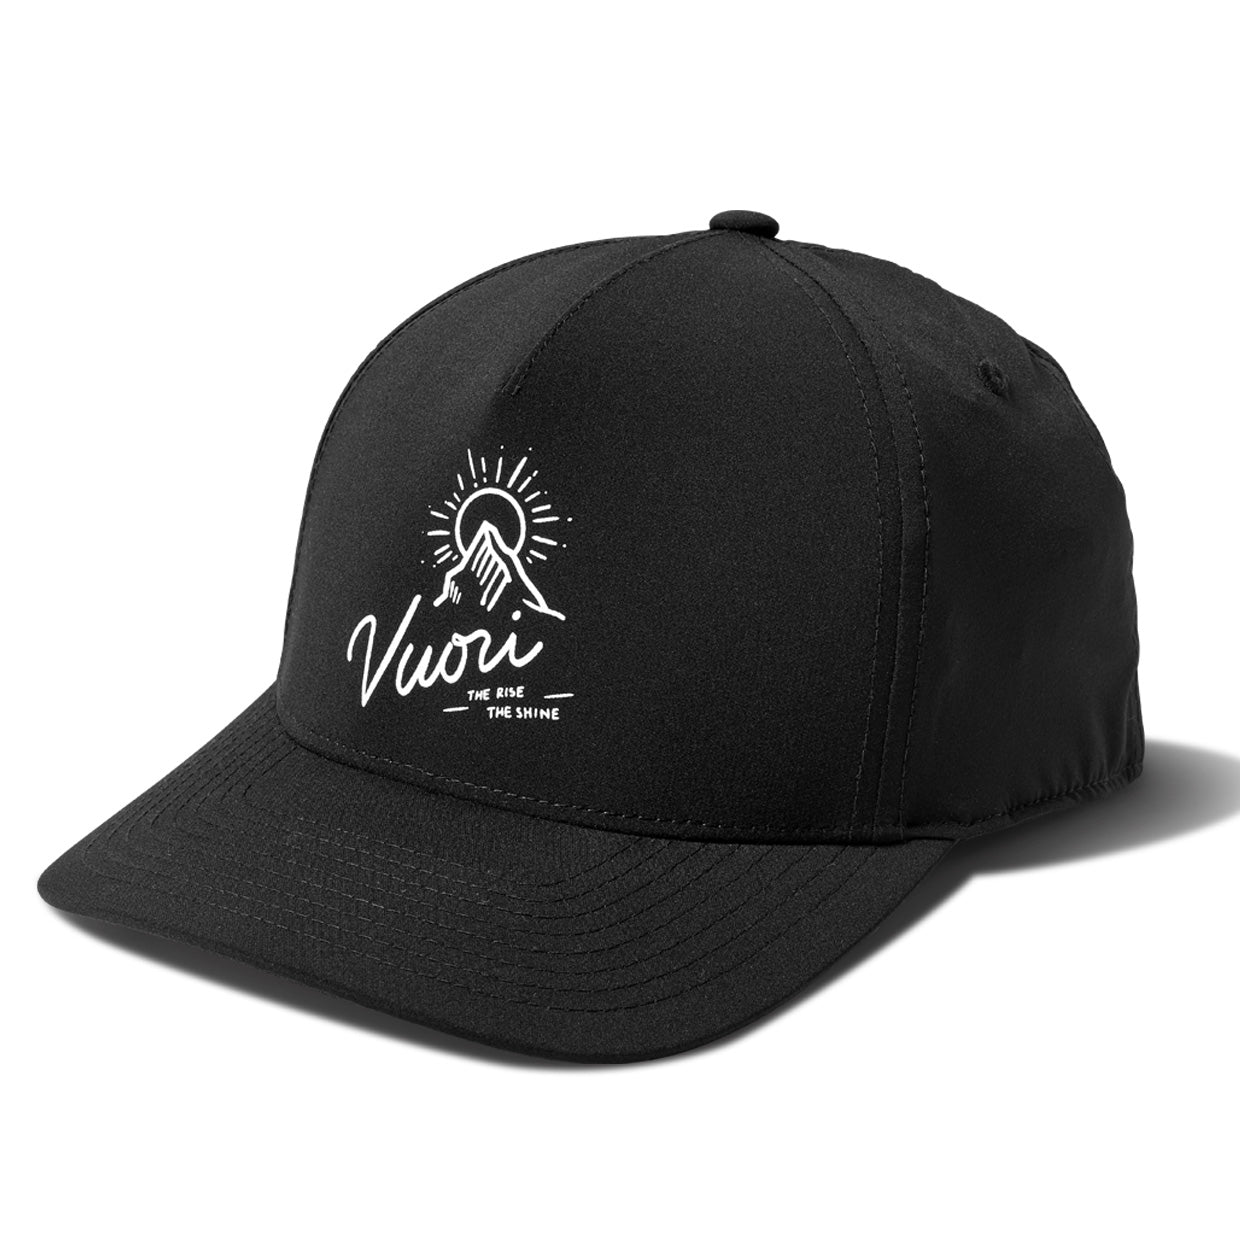 The Peak Hat | Black